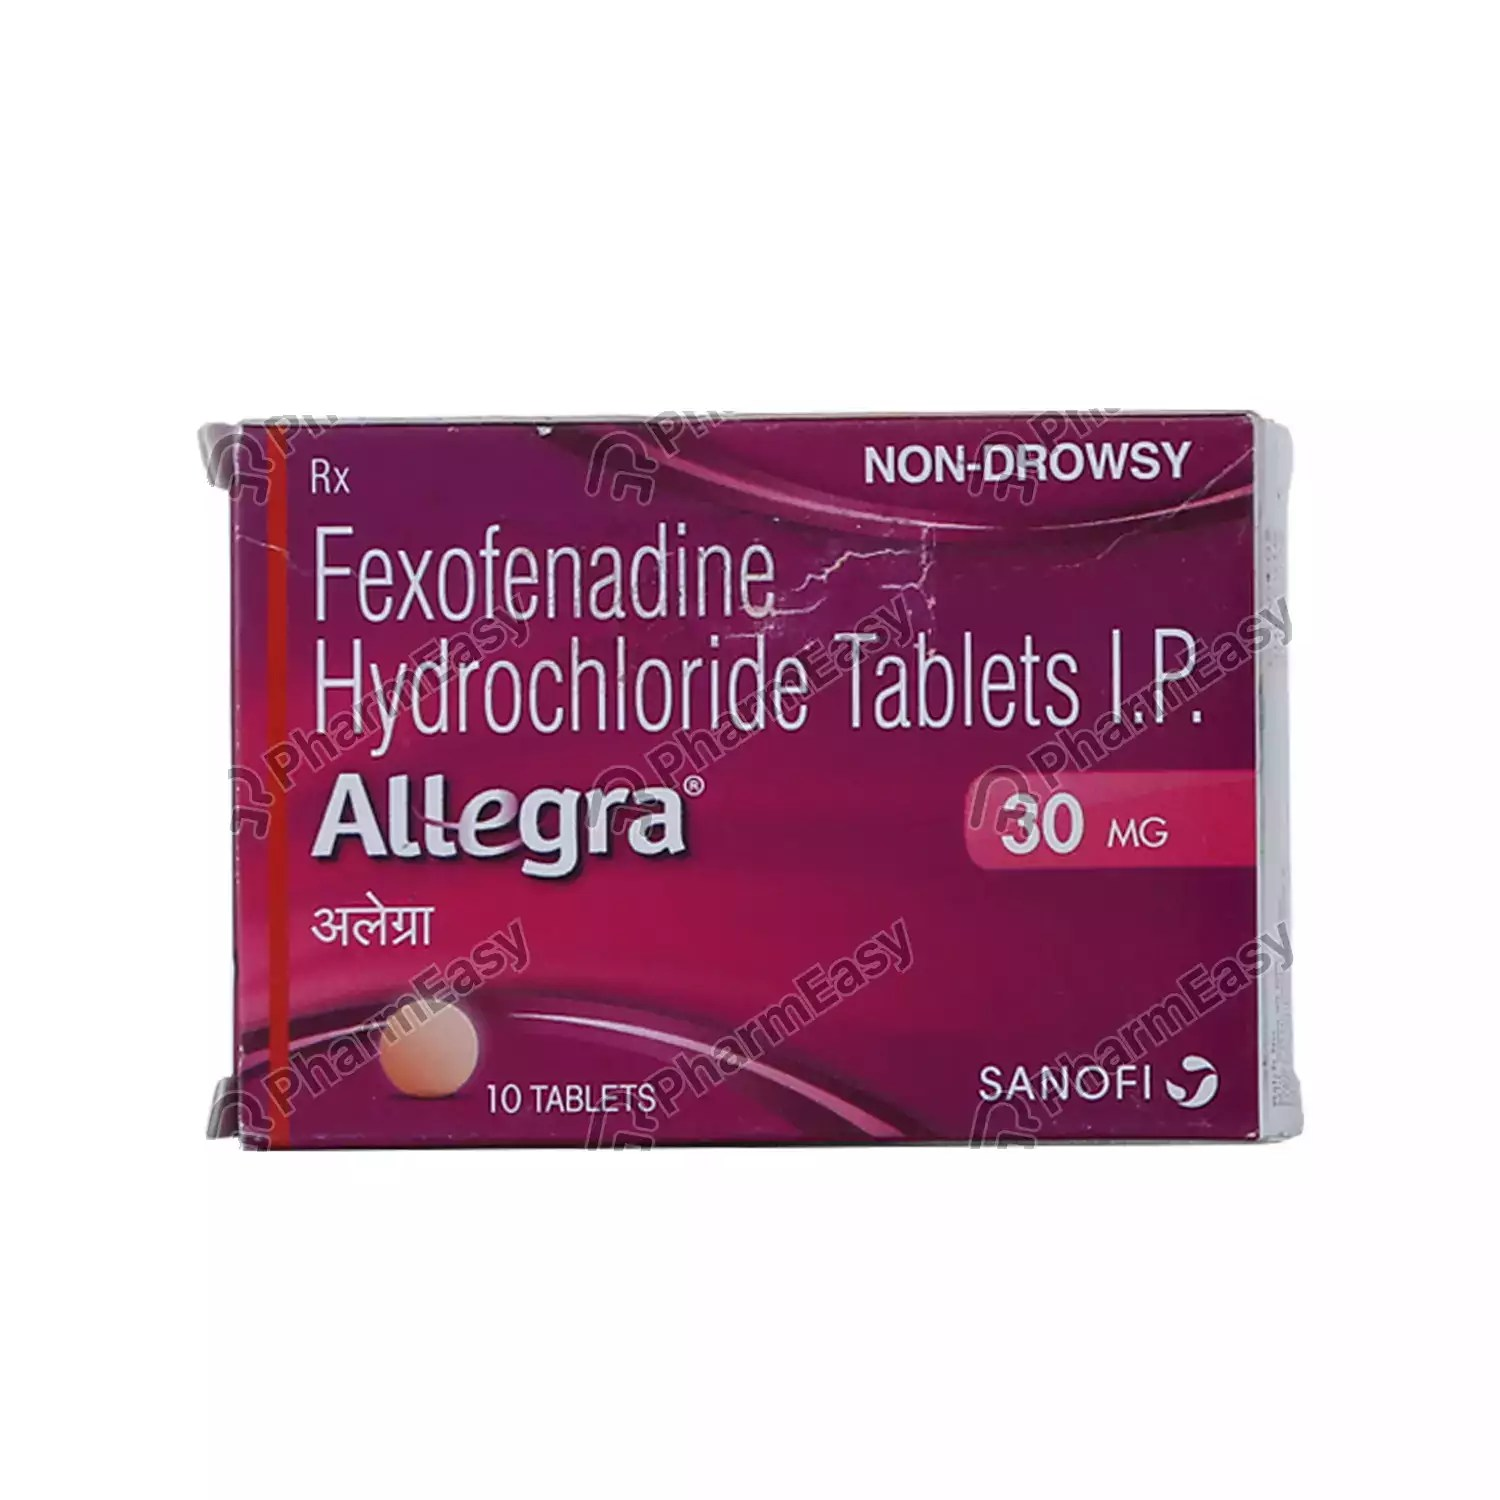 Allegra 30 MG Tablet (10) - Uses. Side Effects. Dosage. Composition & Price | PharmEasy